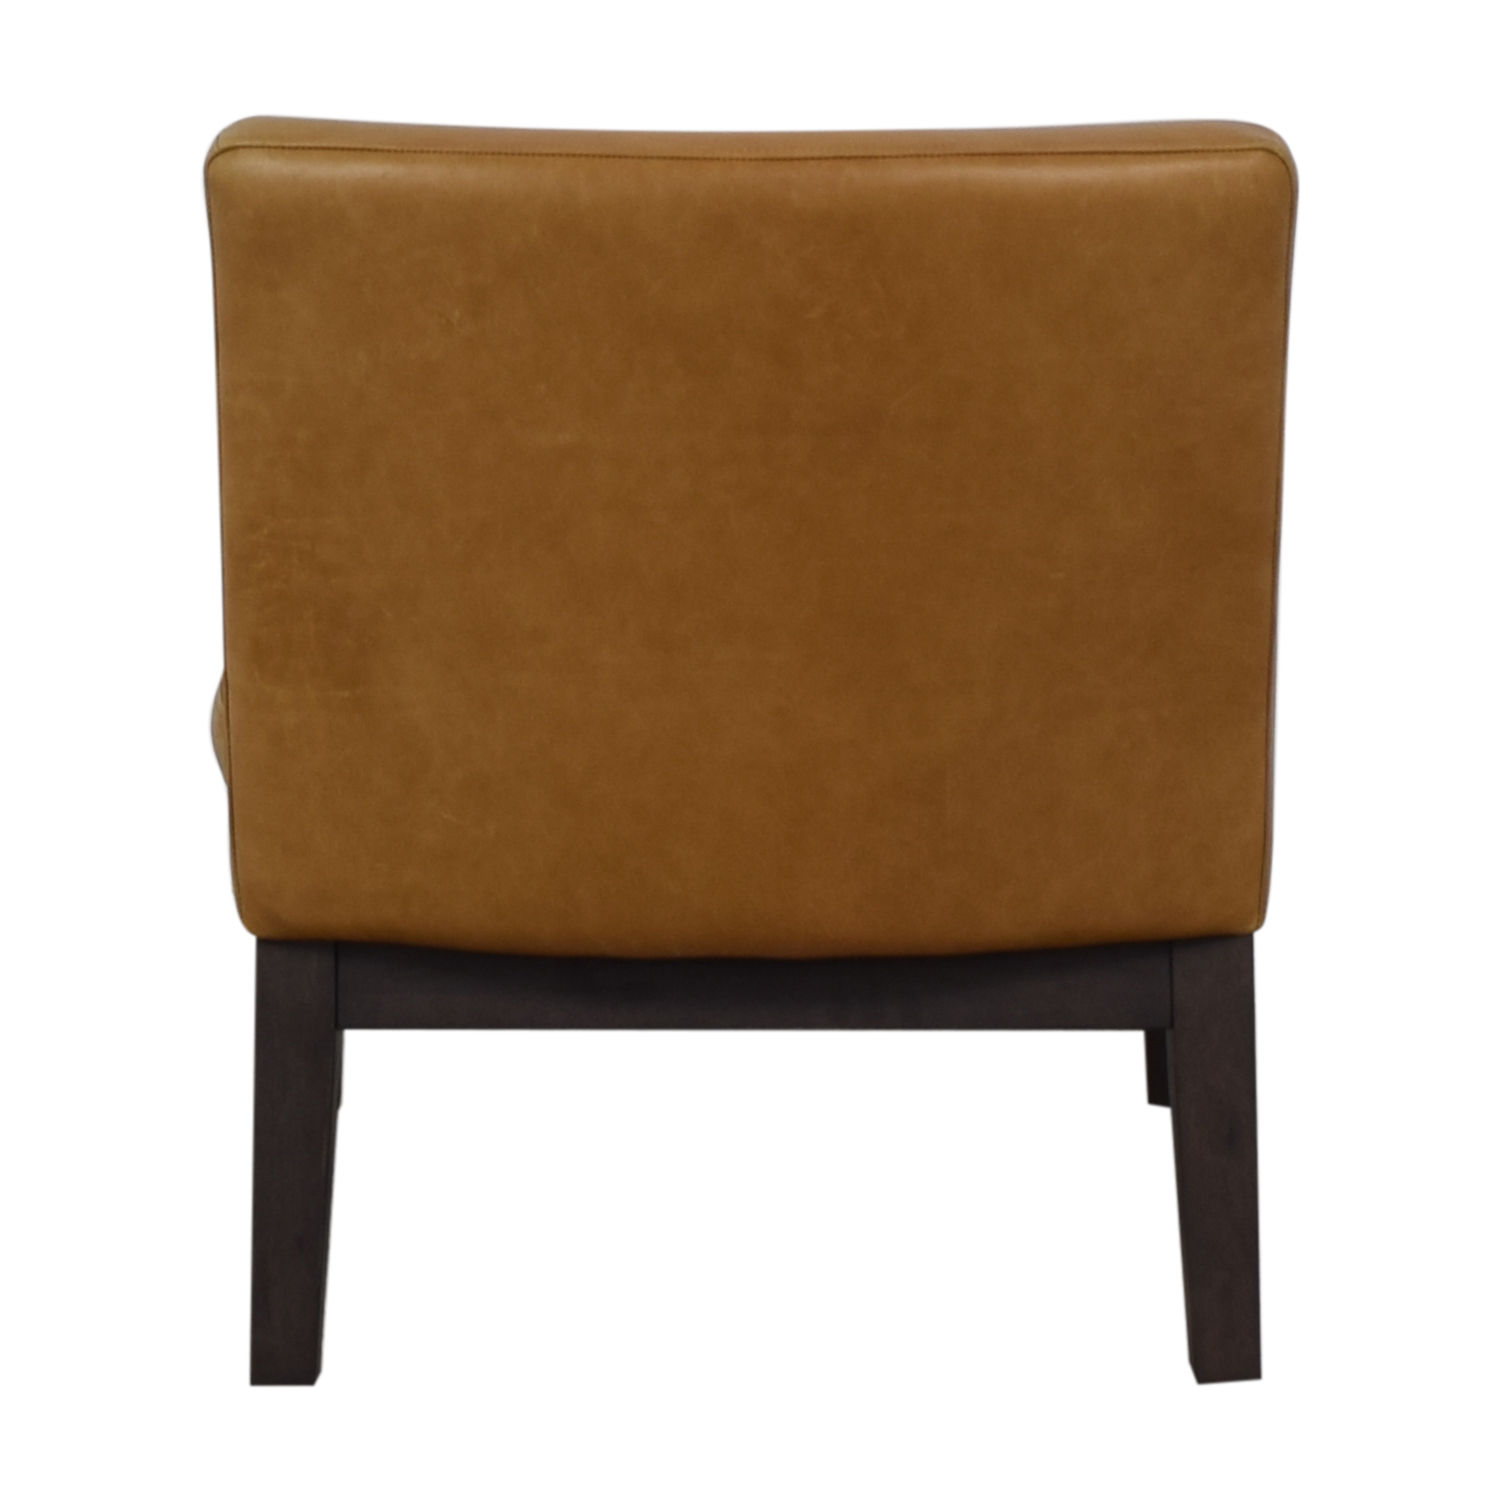 West Elm West Elm Orange Tan Leather Chair Accent Chairs